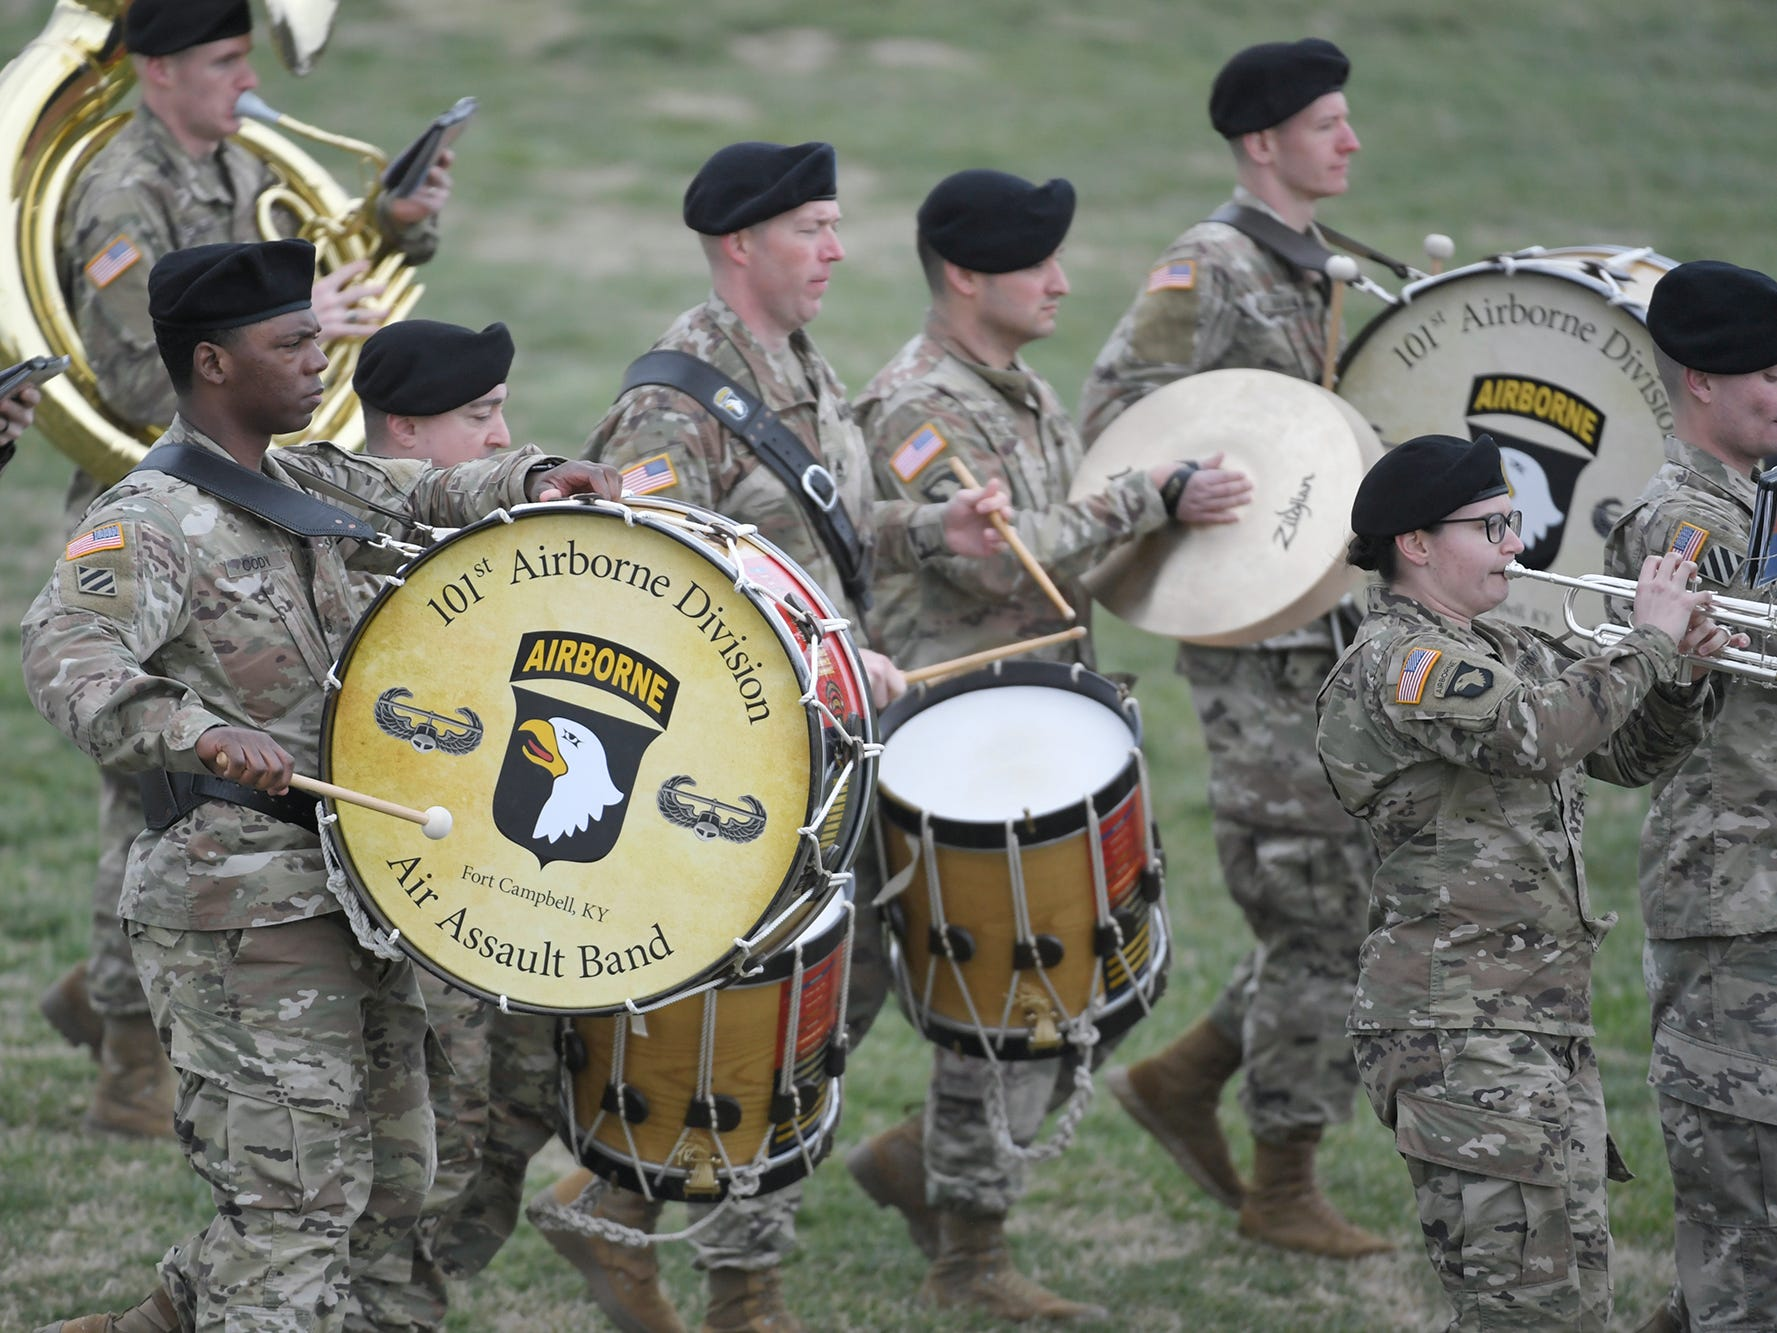 A 101st Airborne Division (Air Assault) and Fort Campbell Division Change of Command ceremony was held at  Fort Campbell, KY on Thursday, Feb. 14, 2019.